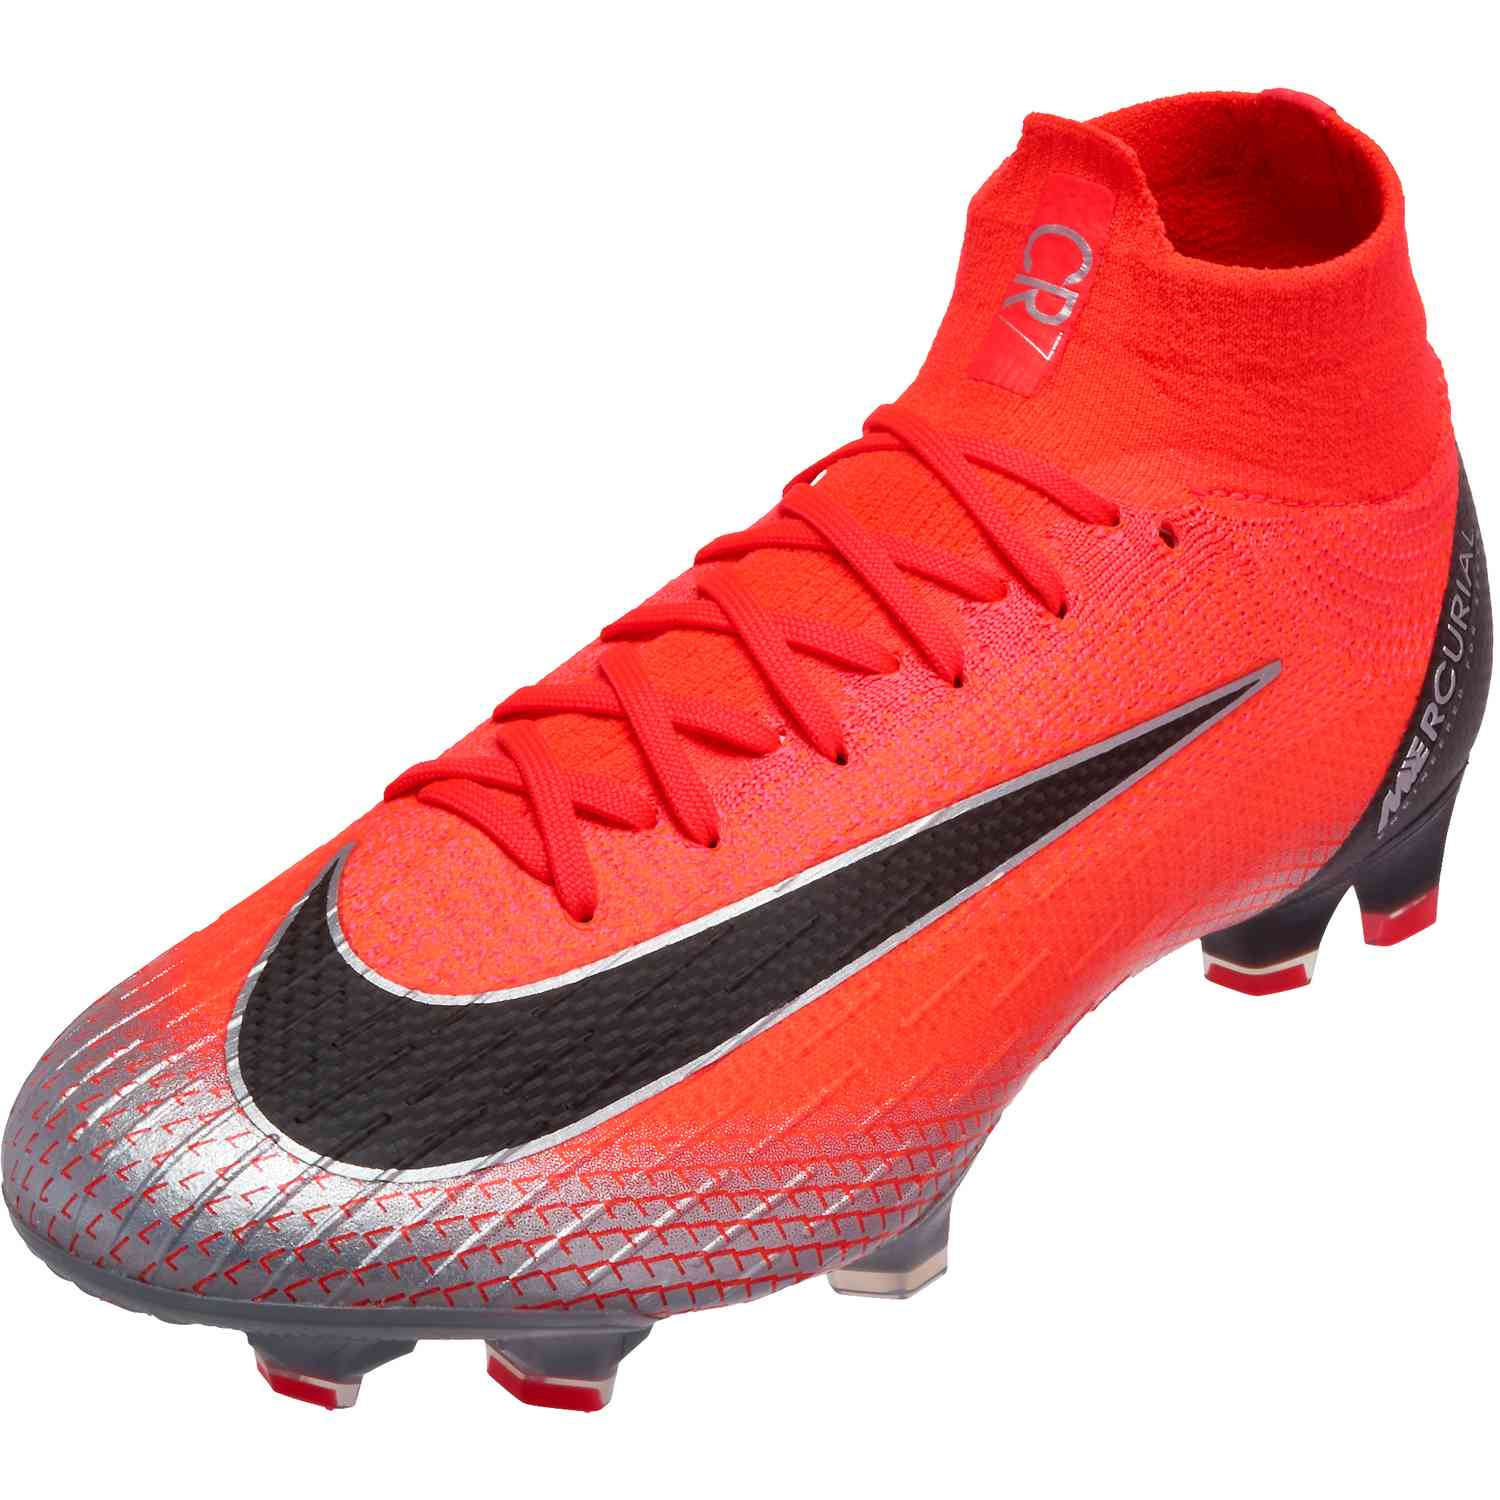 0a884958f66 Buy 2 OFF ANY nike mercurial superfly elite CASE AND GET 70% OFF!